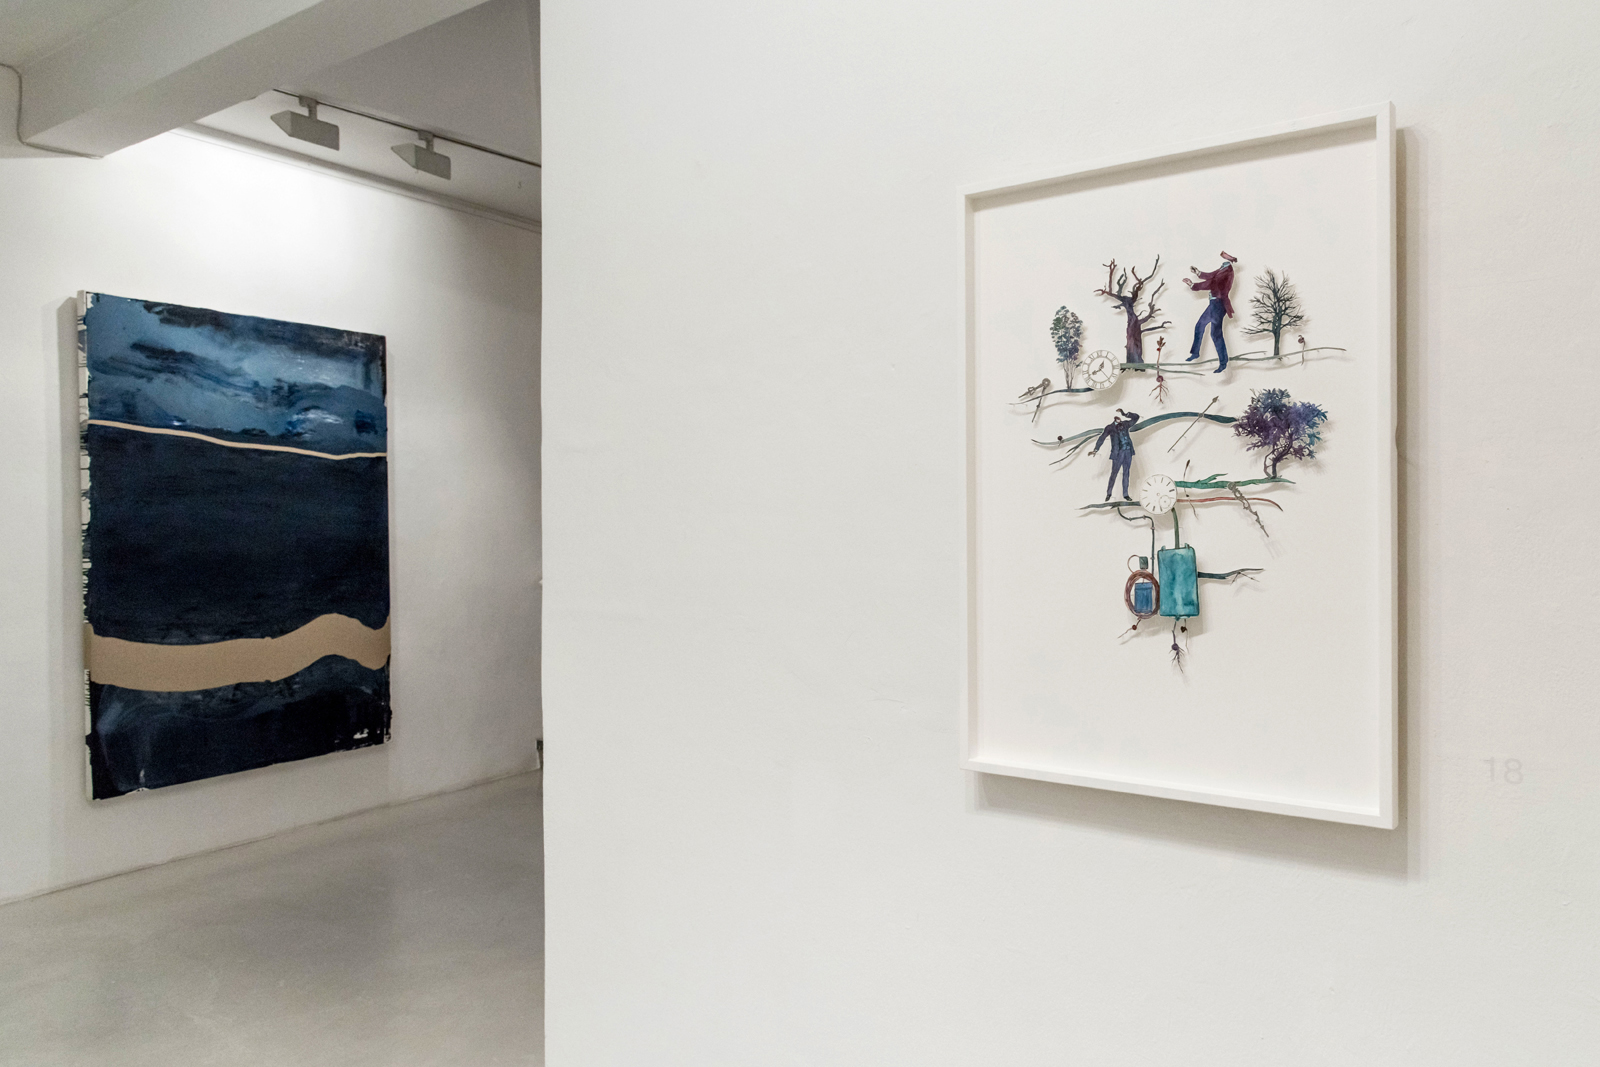 INSTALLATION VIEW, GALLERY OF THE CITY OF VILLACH / GALLERY FREIHAUSGASSE, autumn 2018 - additional painting by  David Holzinger